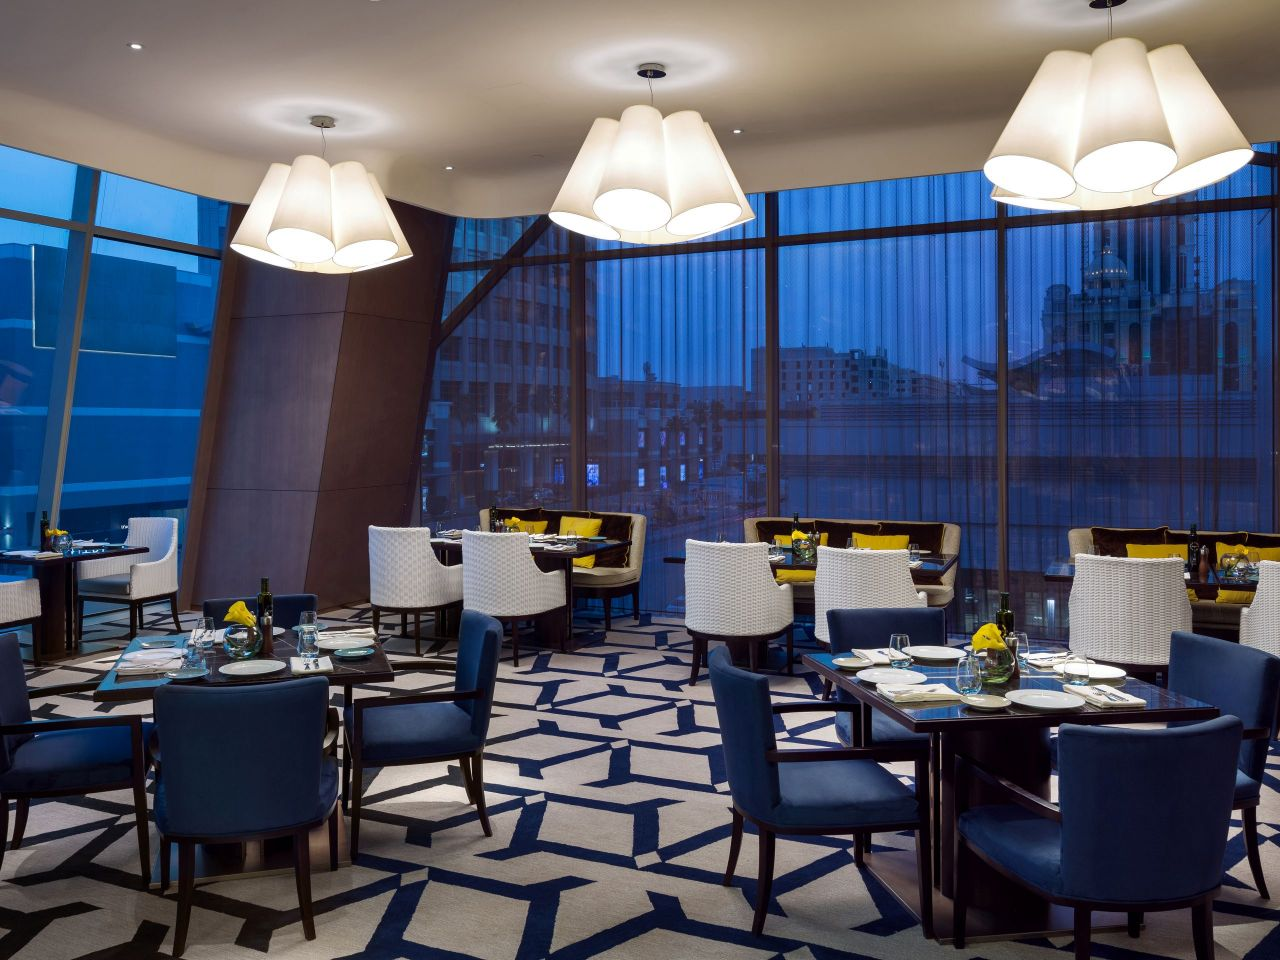 Tables and chairs by windows in hotel restaurant at night